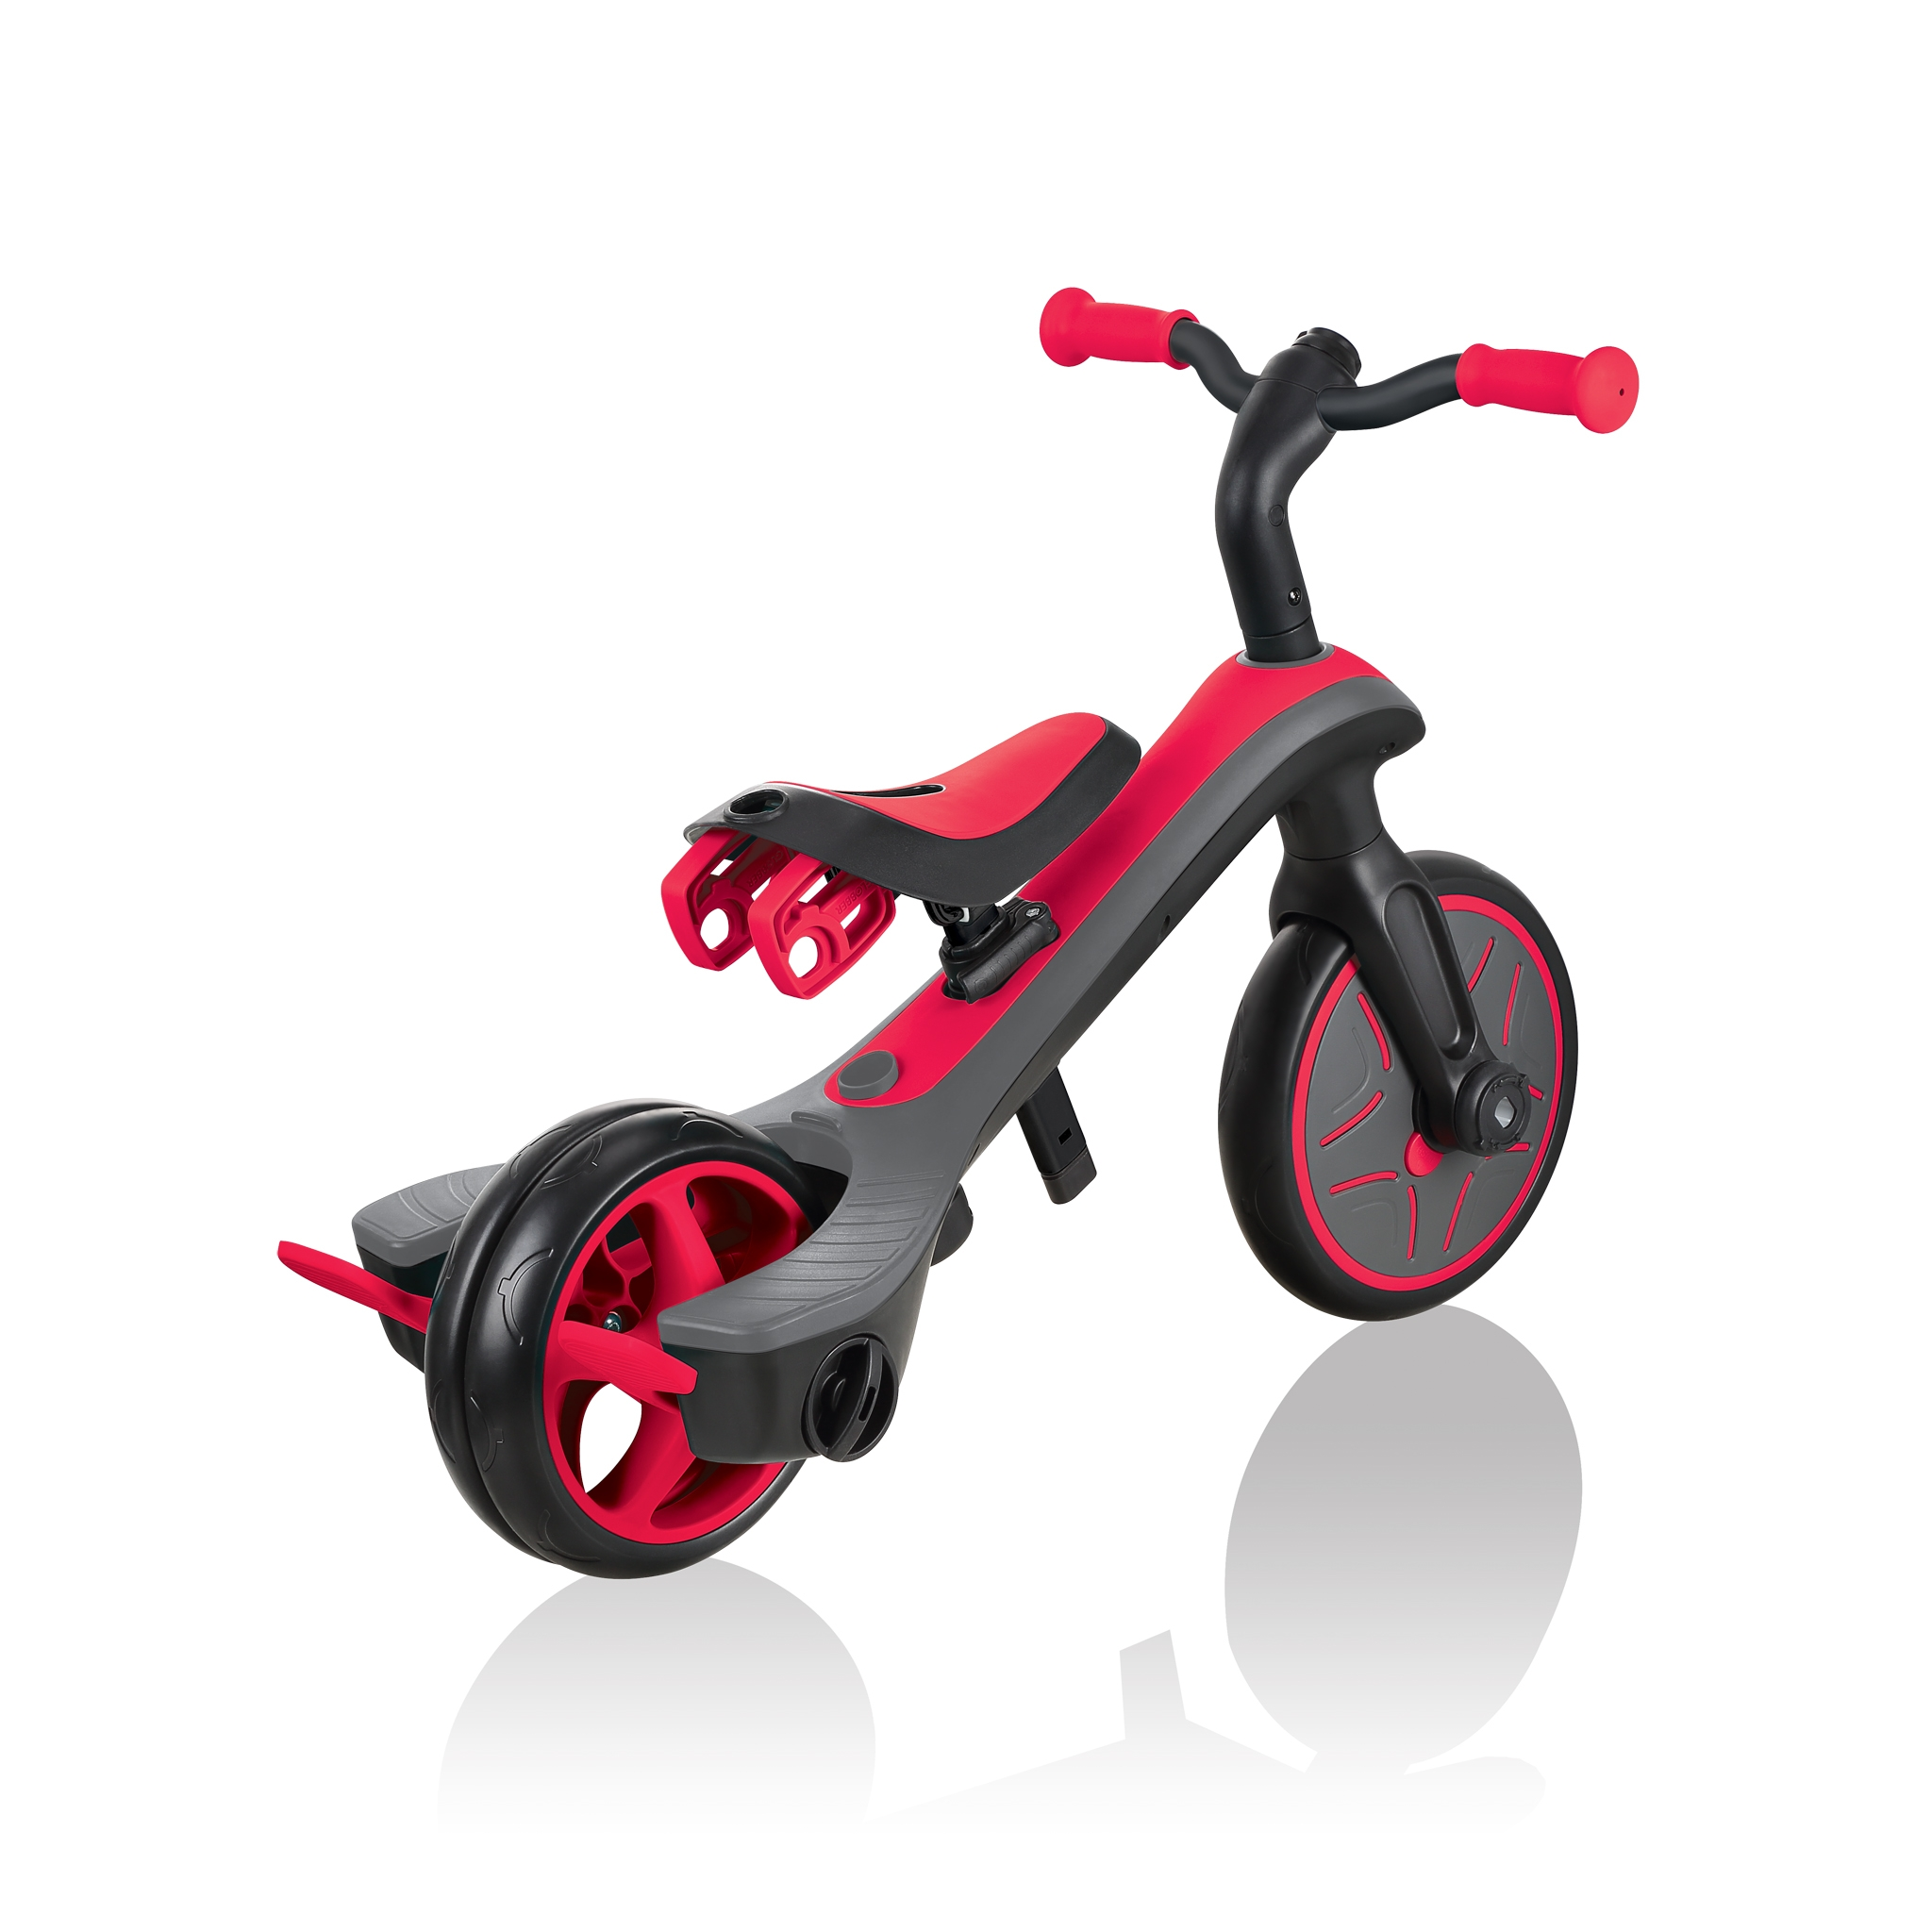 Globber-EXPLORER-TRIKE-4in1-all-in-one-baby-tricycle-and-kids-balance-bike-with-smart-pedal-storage_new-red